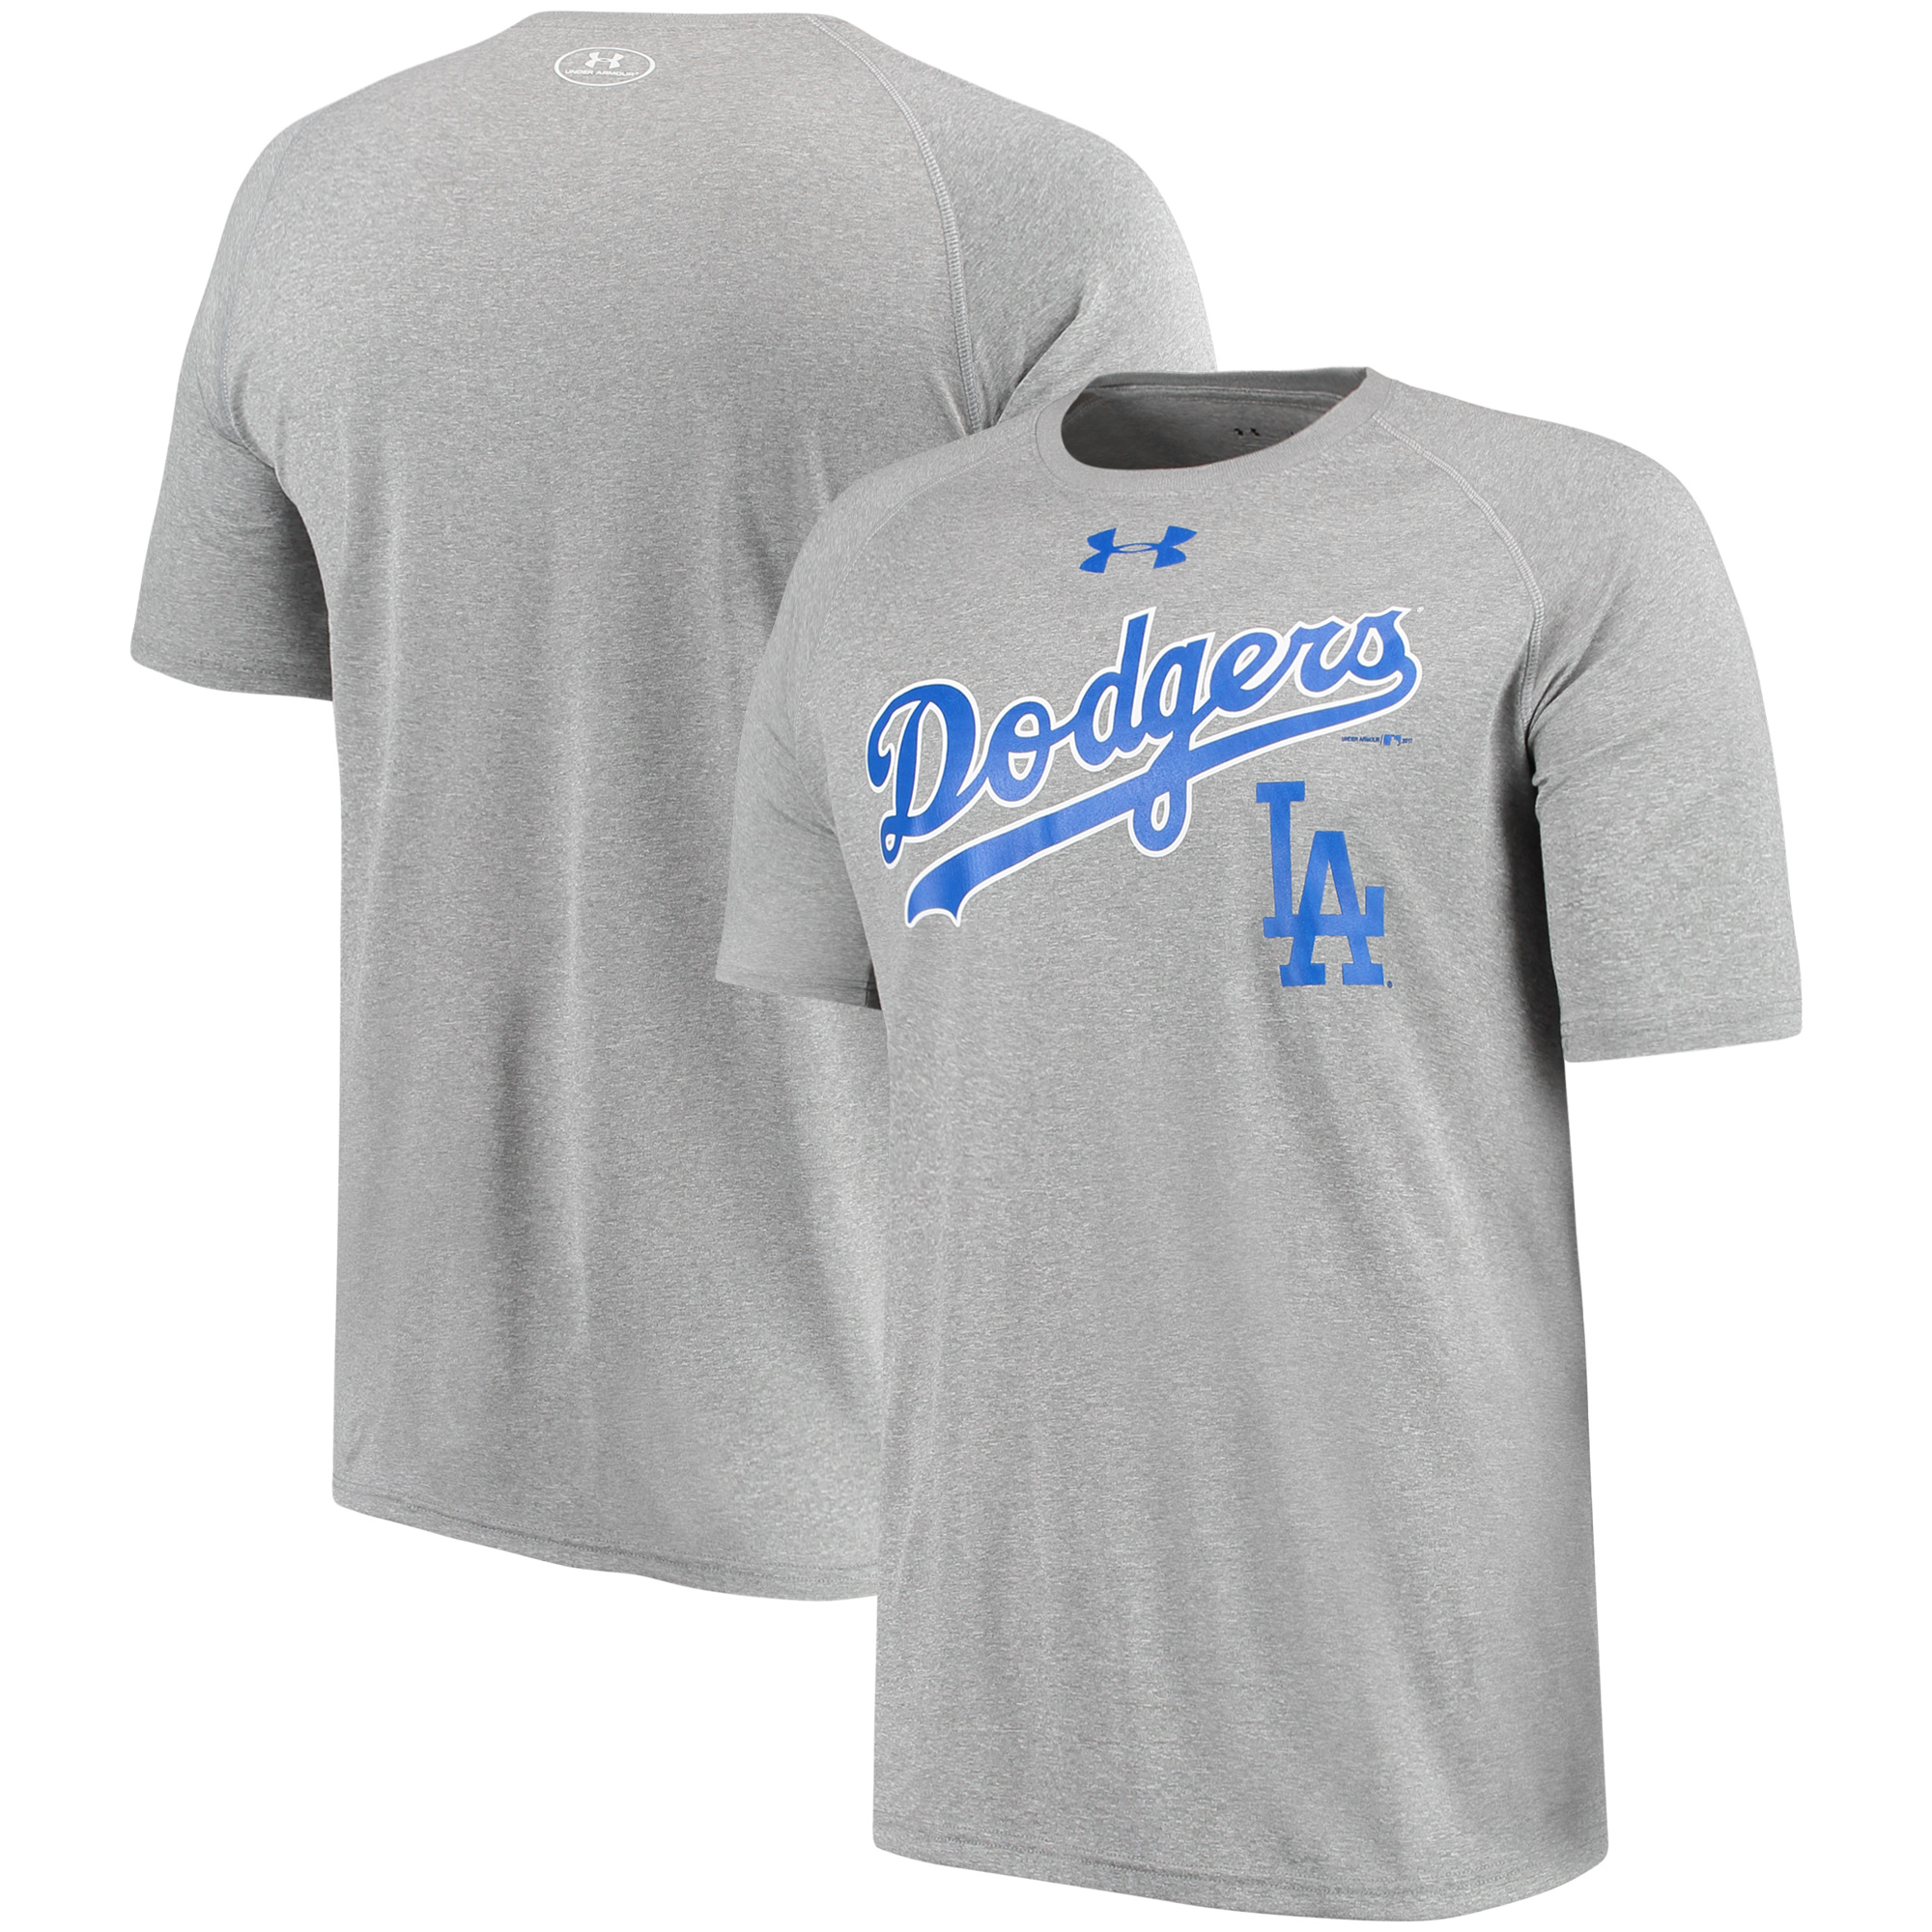 Los Angeles Dodgers Under Armour Tech Performance Raglan Sleeve T-Shirt - Gray